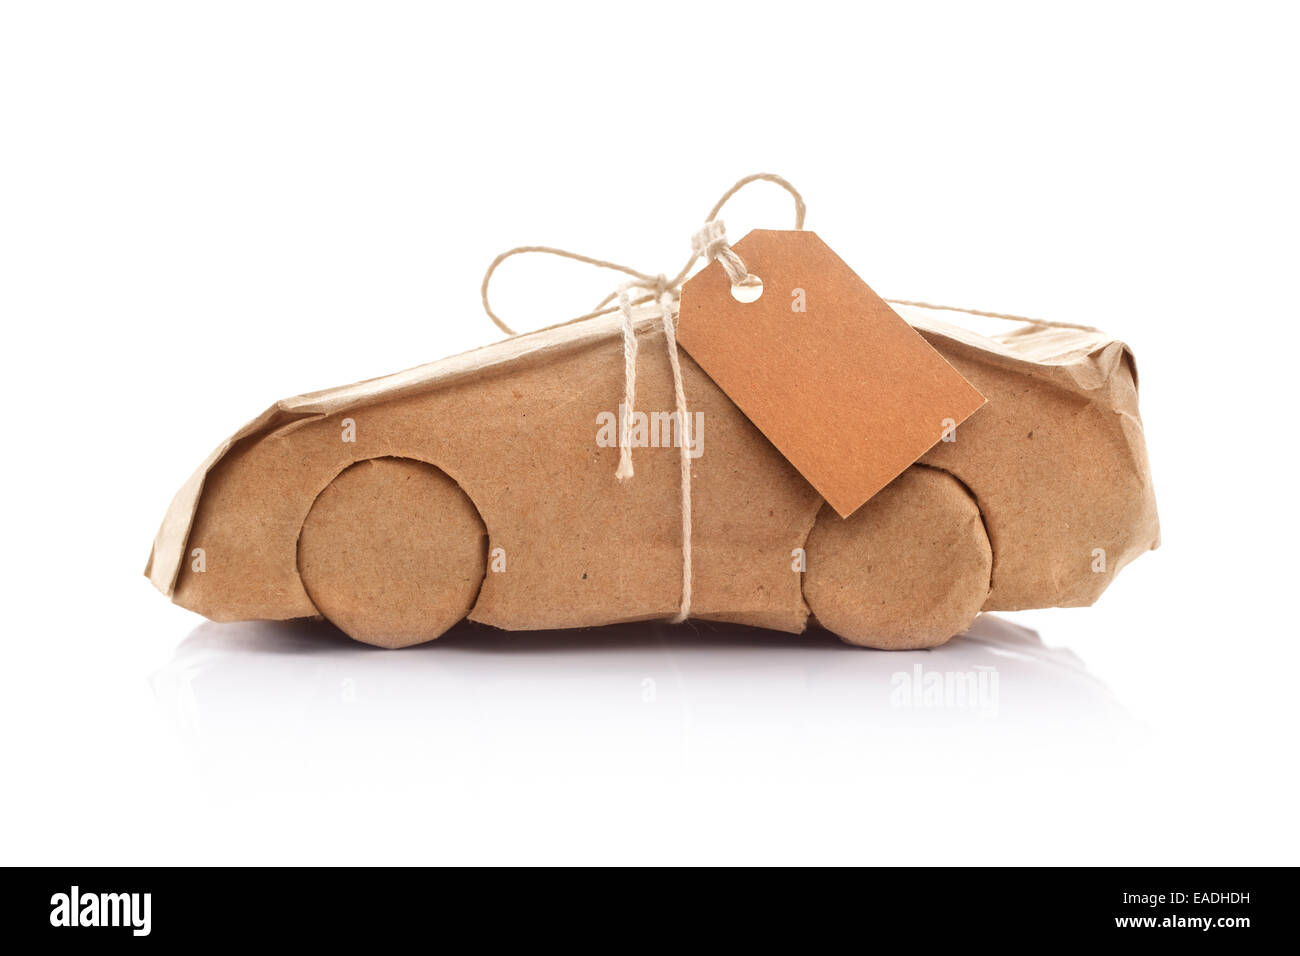 Car wrapped in brown paper - Stock Image